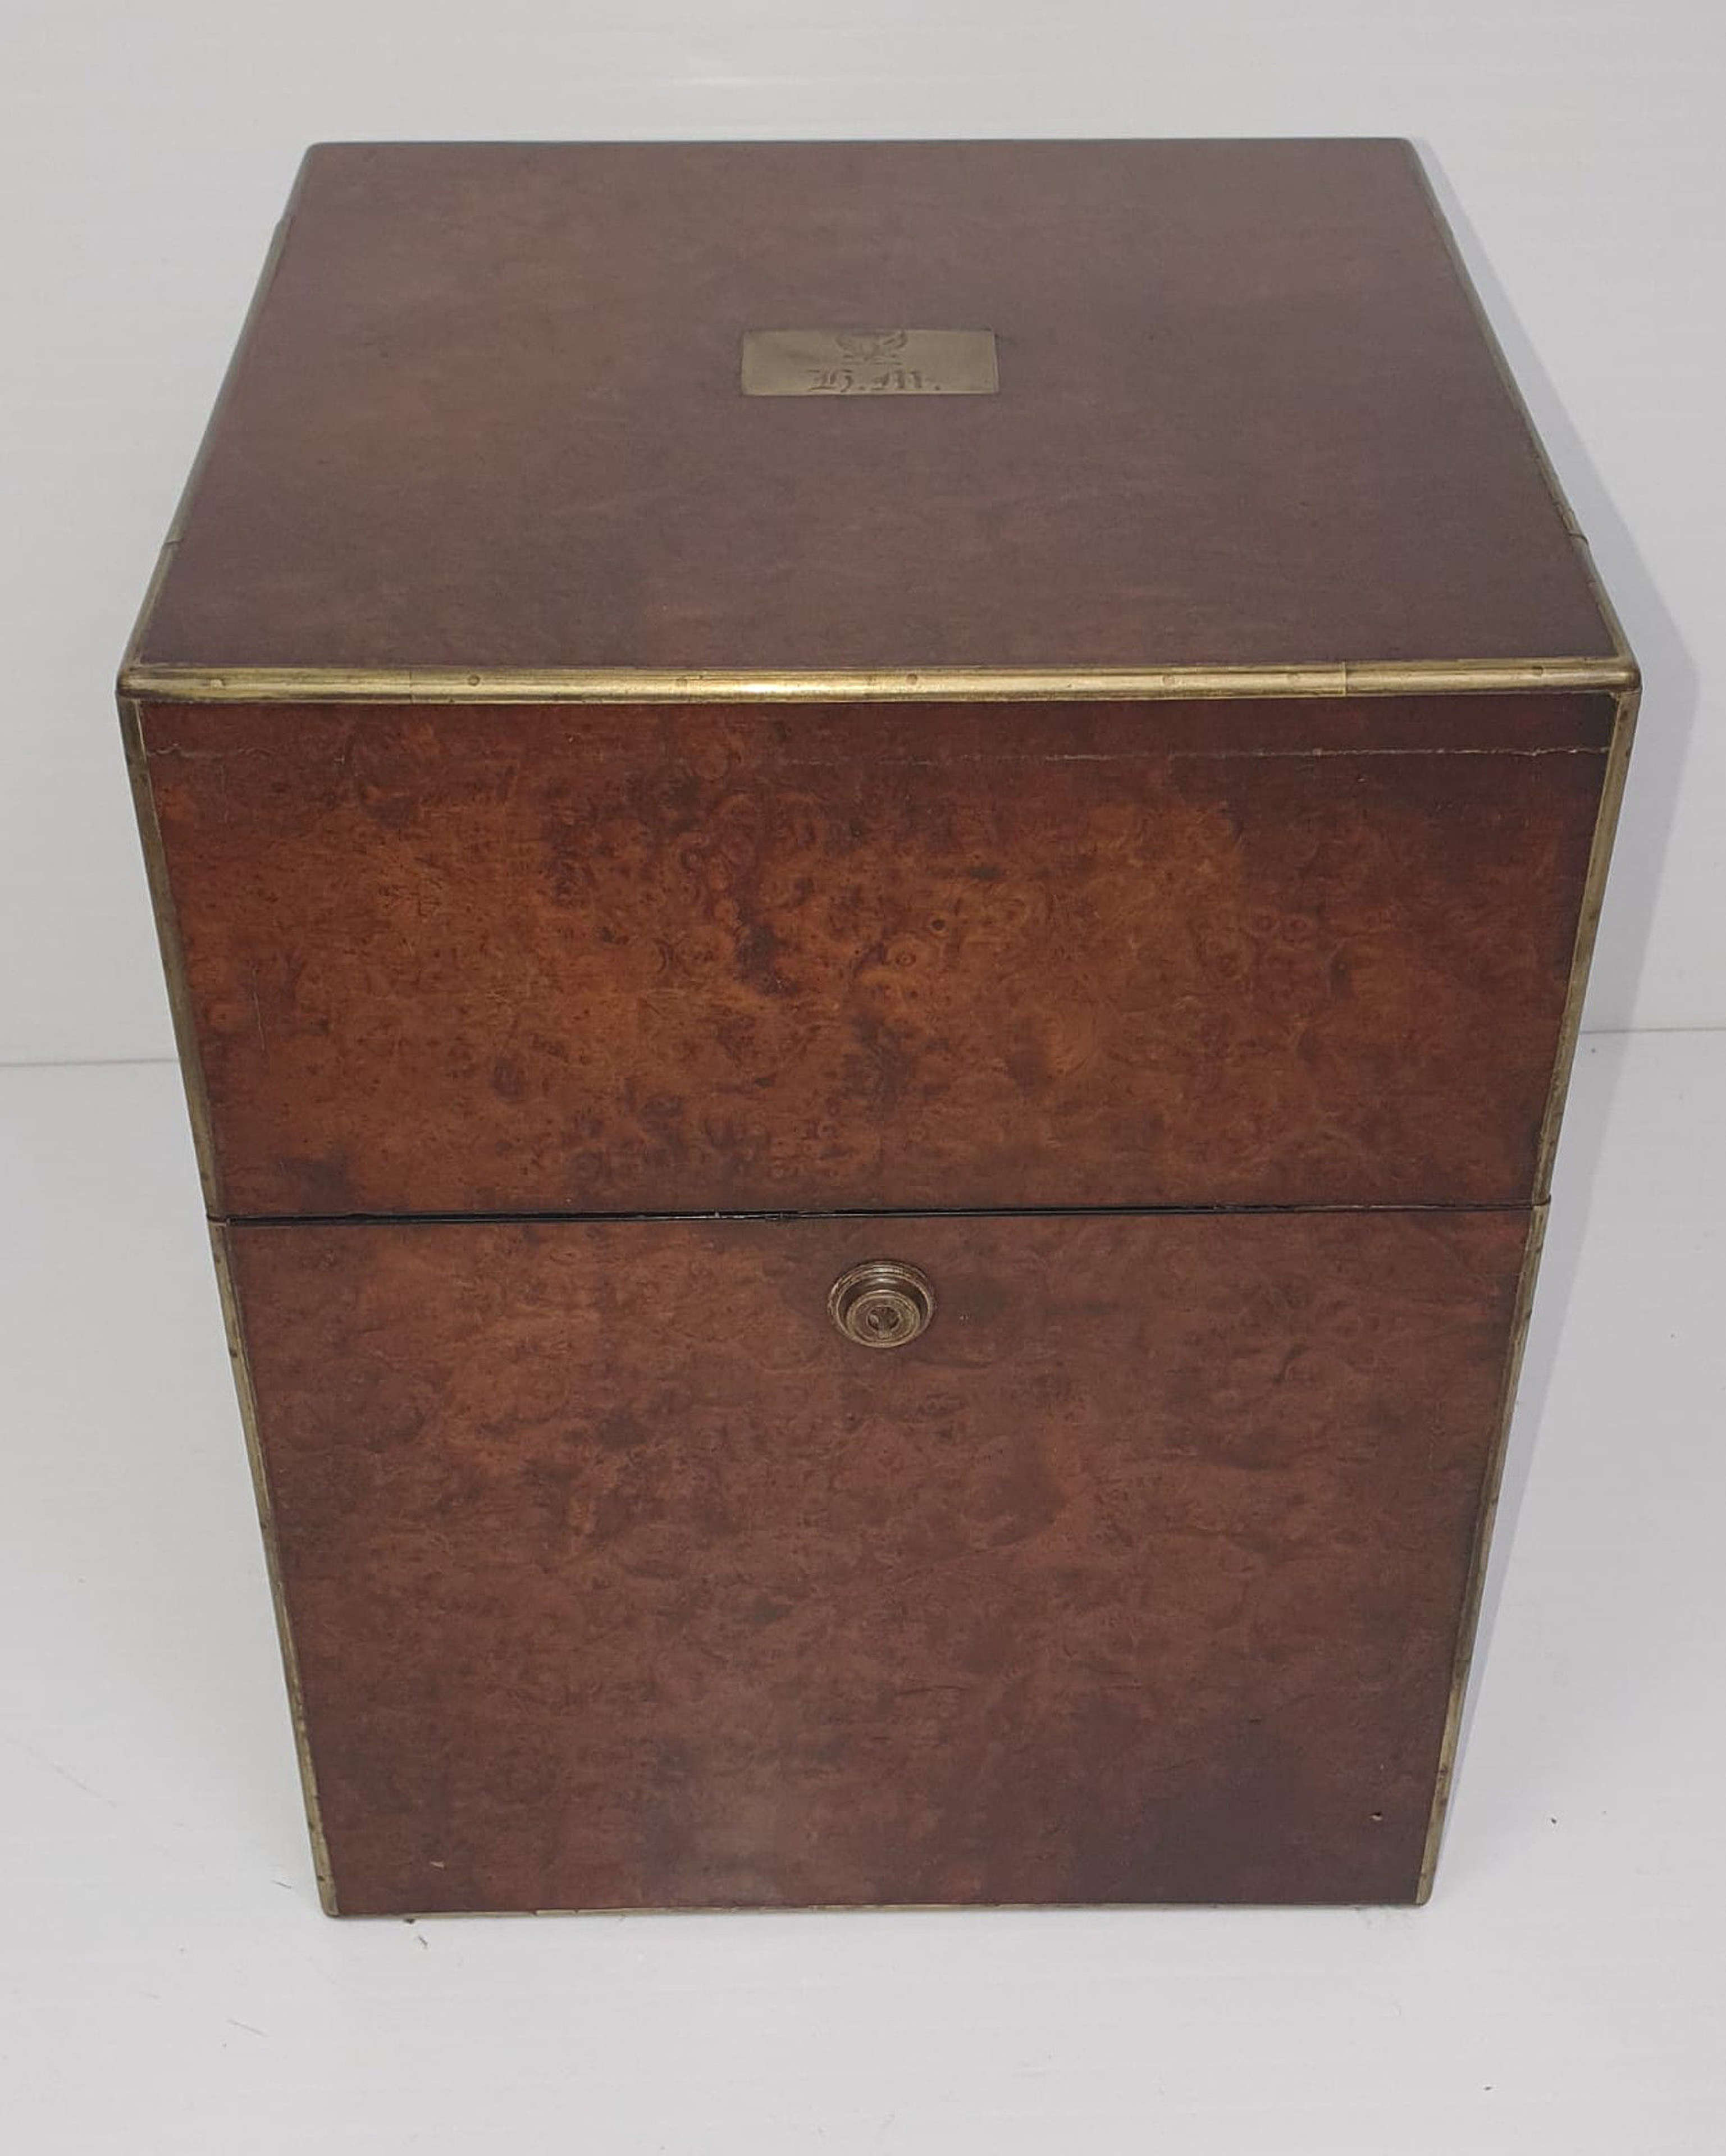 19th Century Decanter Box with Four Cut Glass Decanters